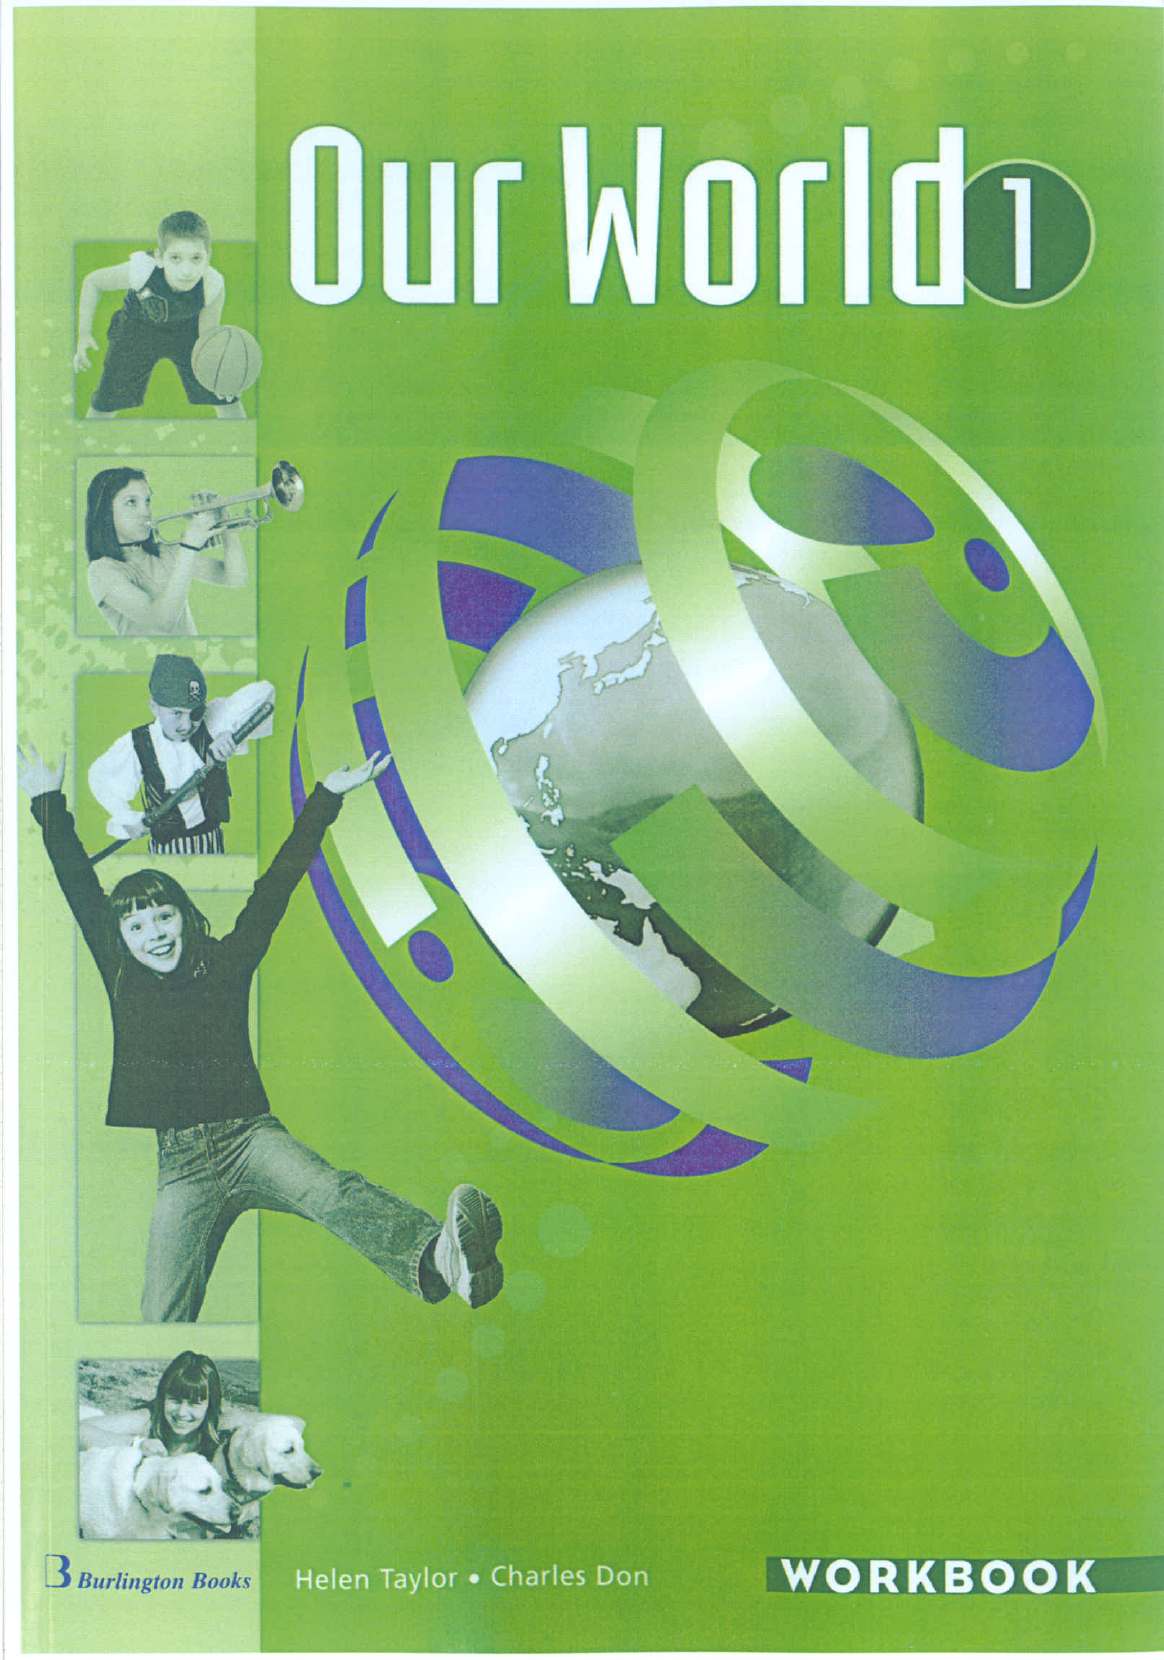 OUR WORLD 1 WORKBOOK